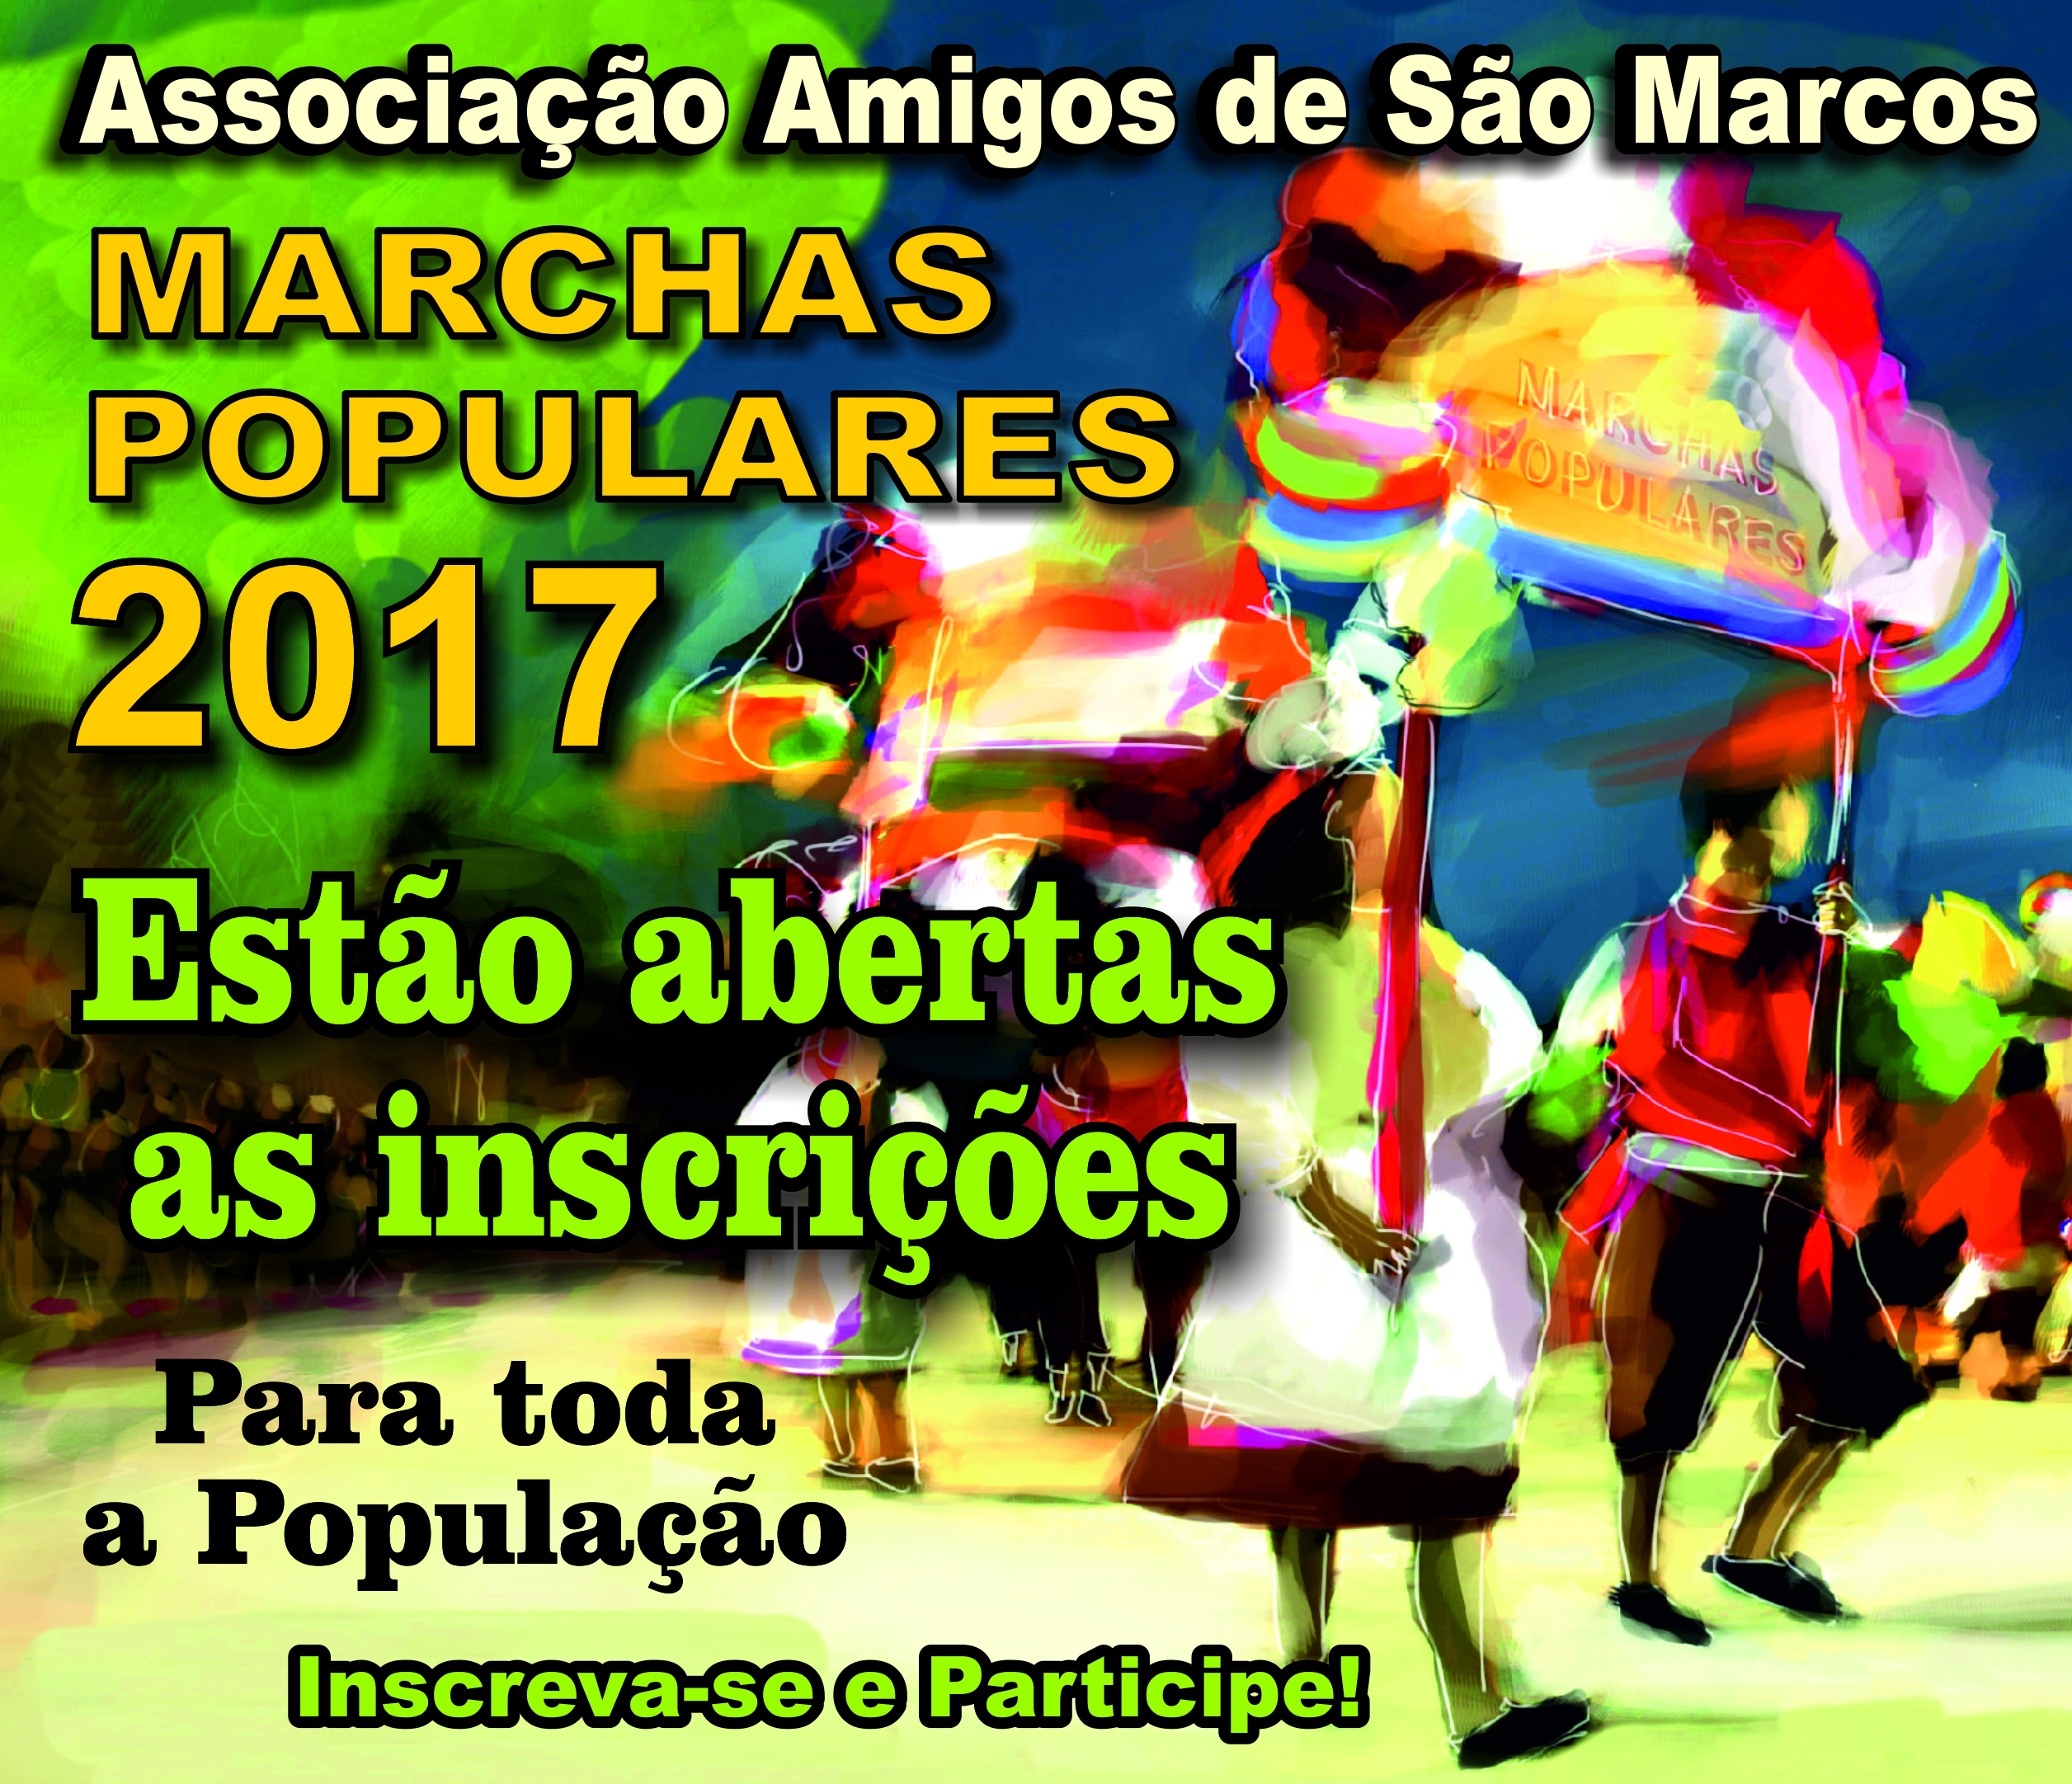 inscricoes_marchas_2017.jpg